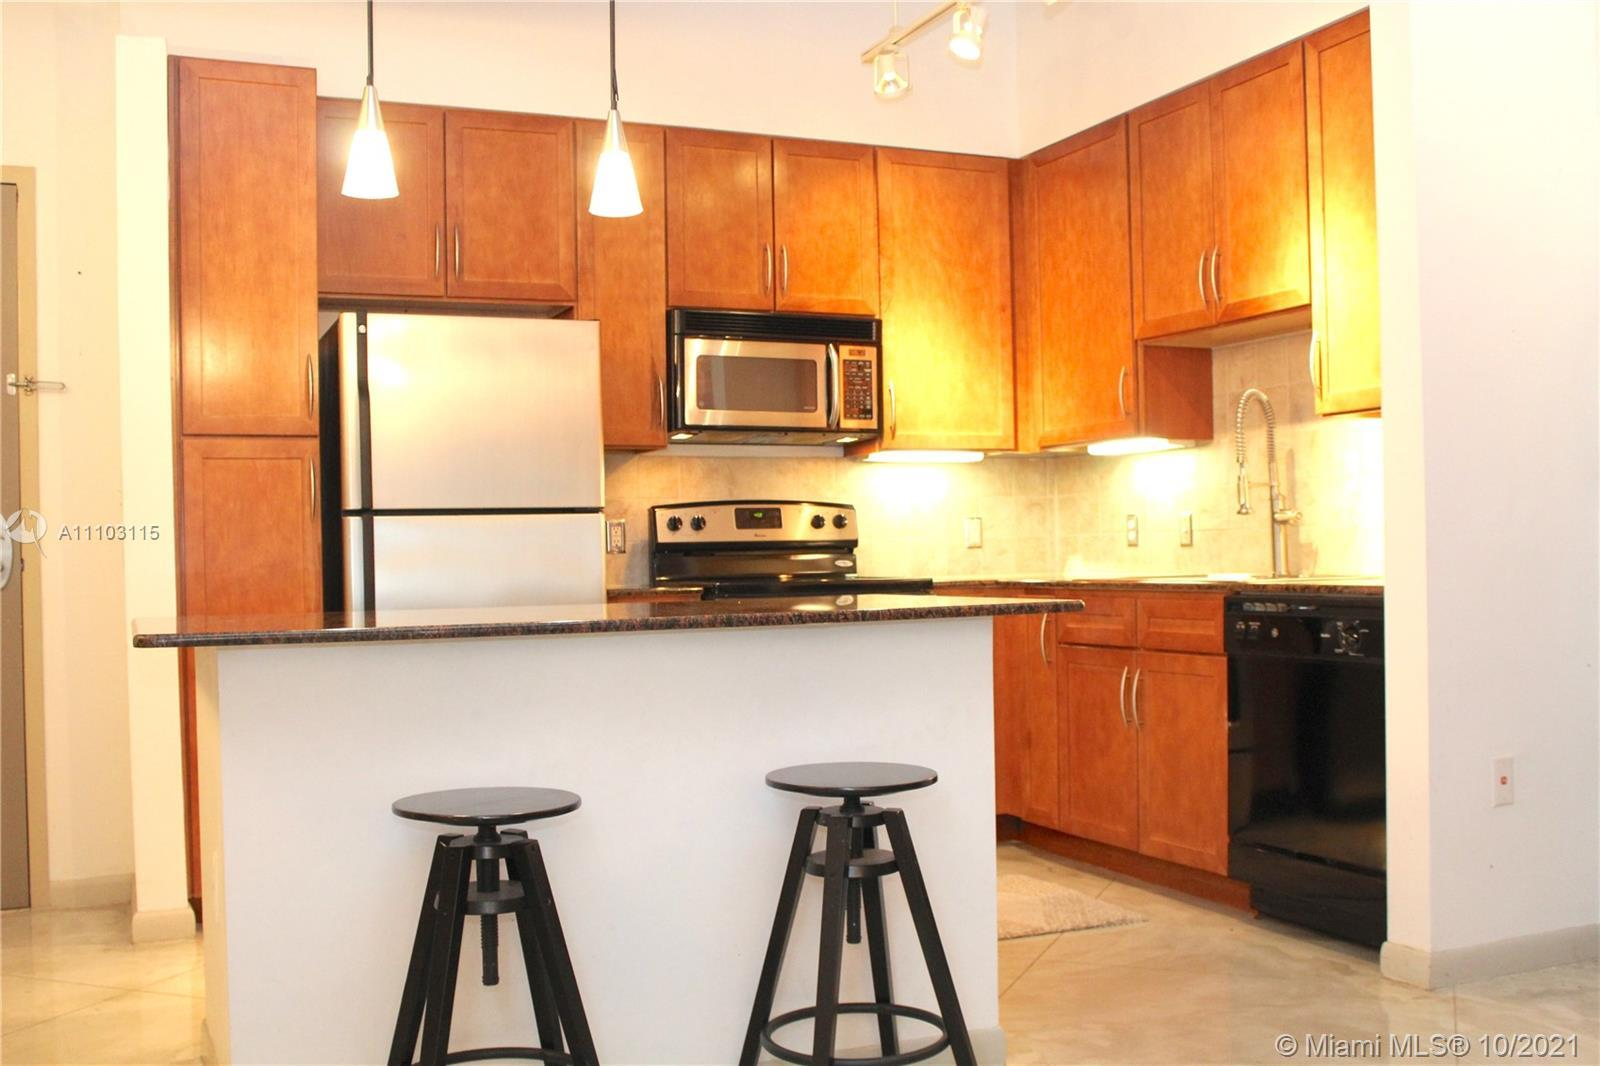 Beautiful 1 Bed/1 Bath loft-style condo at Cite on the Bay. This modern  condo has a private balcony